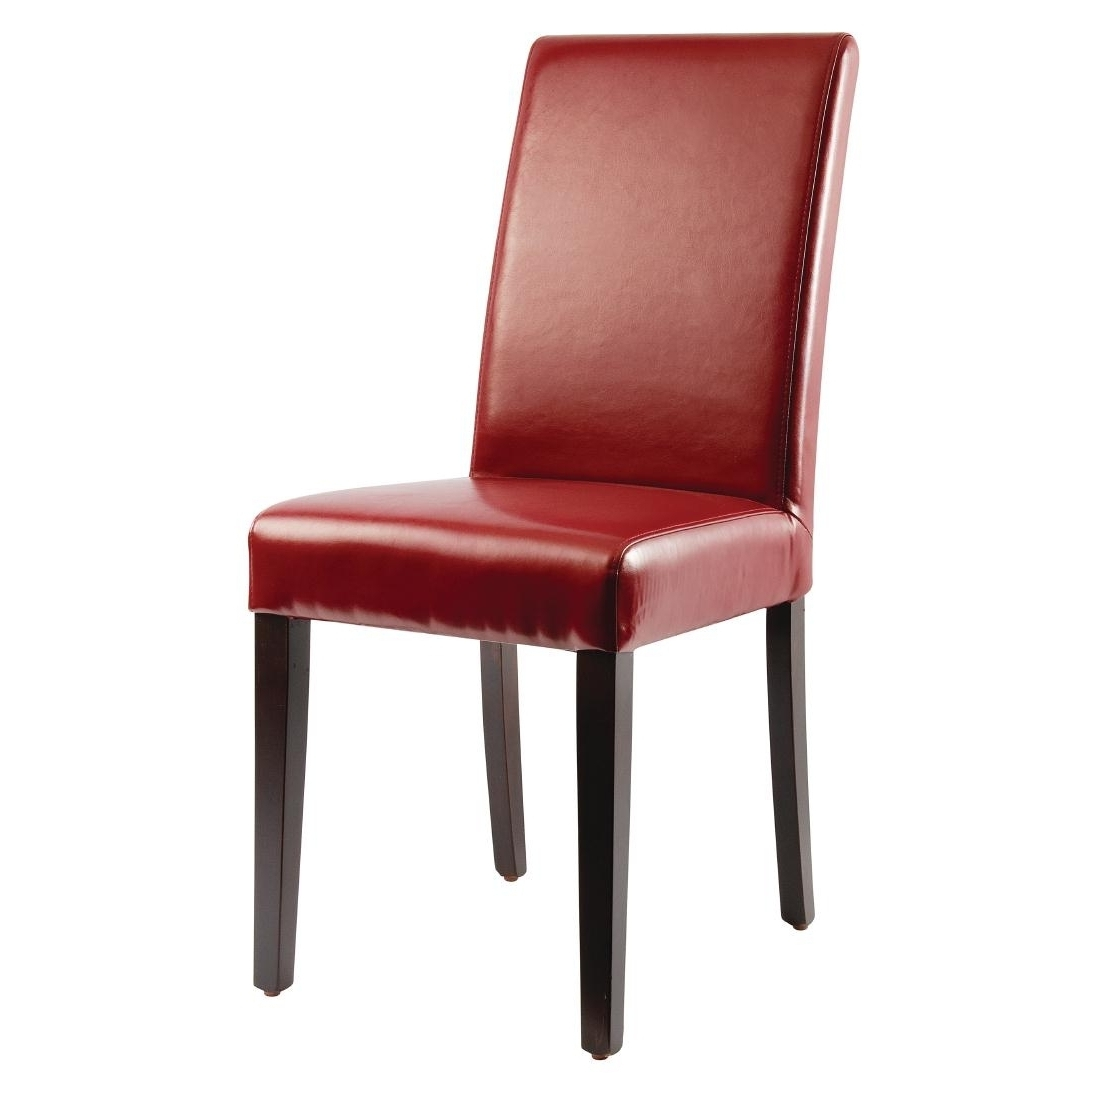 Red Leather Dining Chairs Regarding Trendy Bolero Faux Leather Dining Chairs Red (Pack Of 2) – Gh443 – Buy (View 8 of 25)